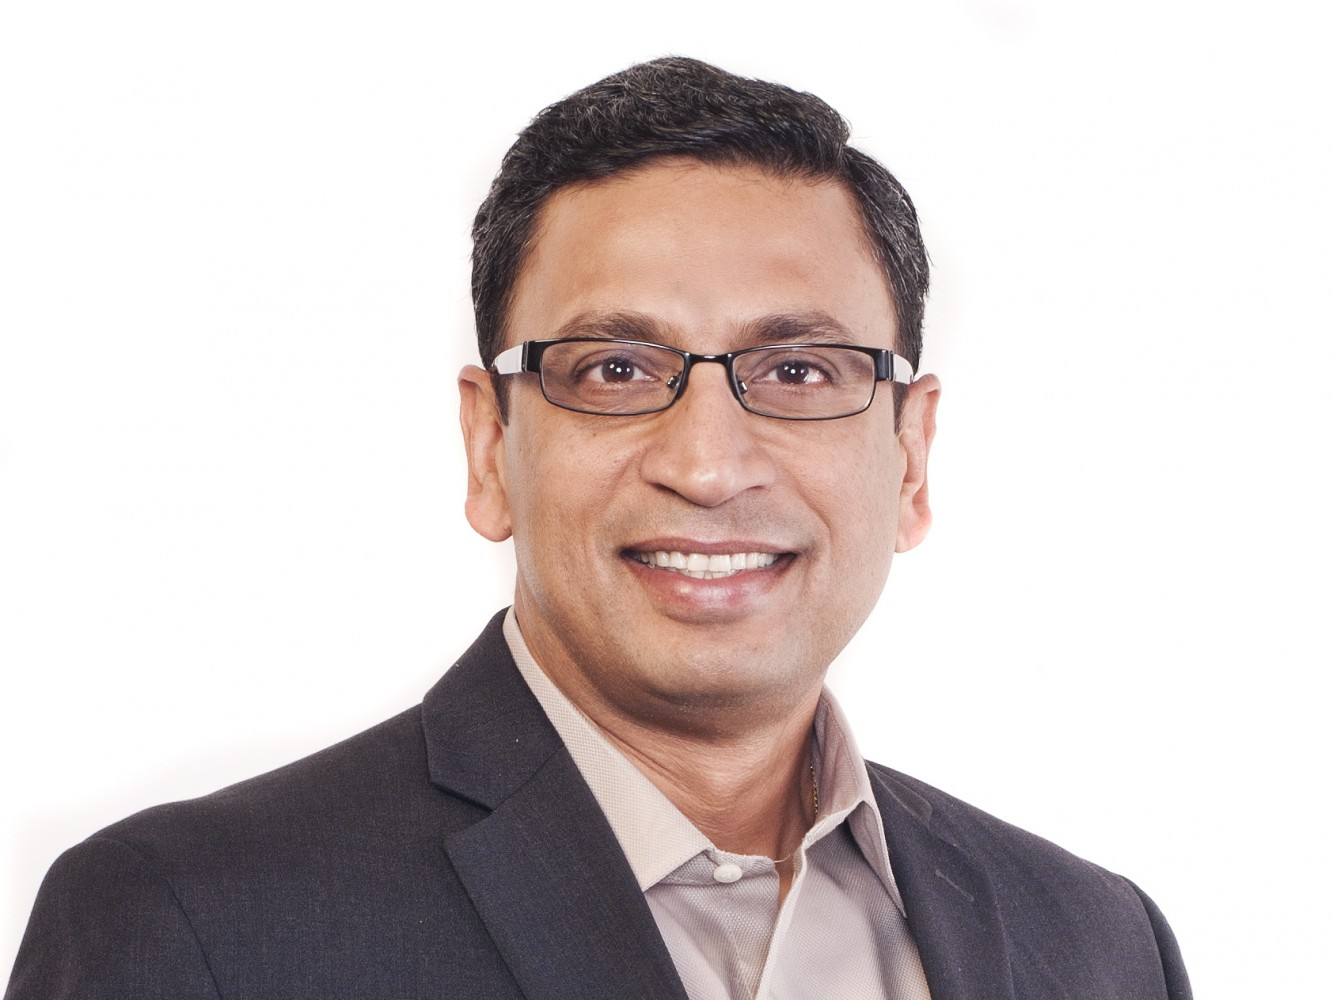 Himanshu Palsule, EVP and Chief Product and Technology Officer Full Headshot